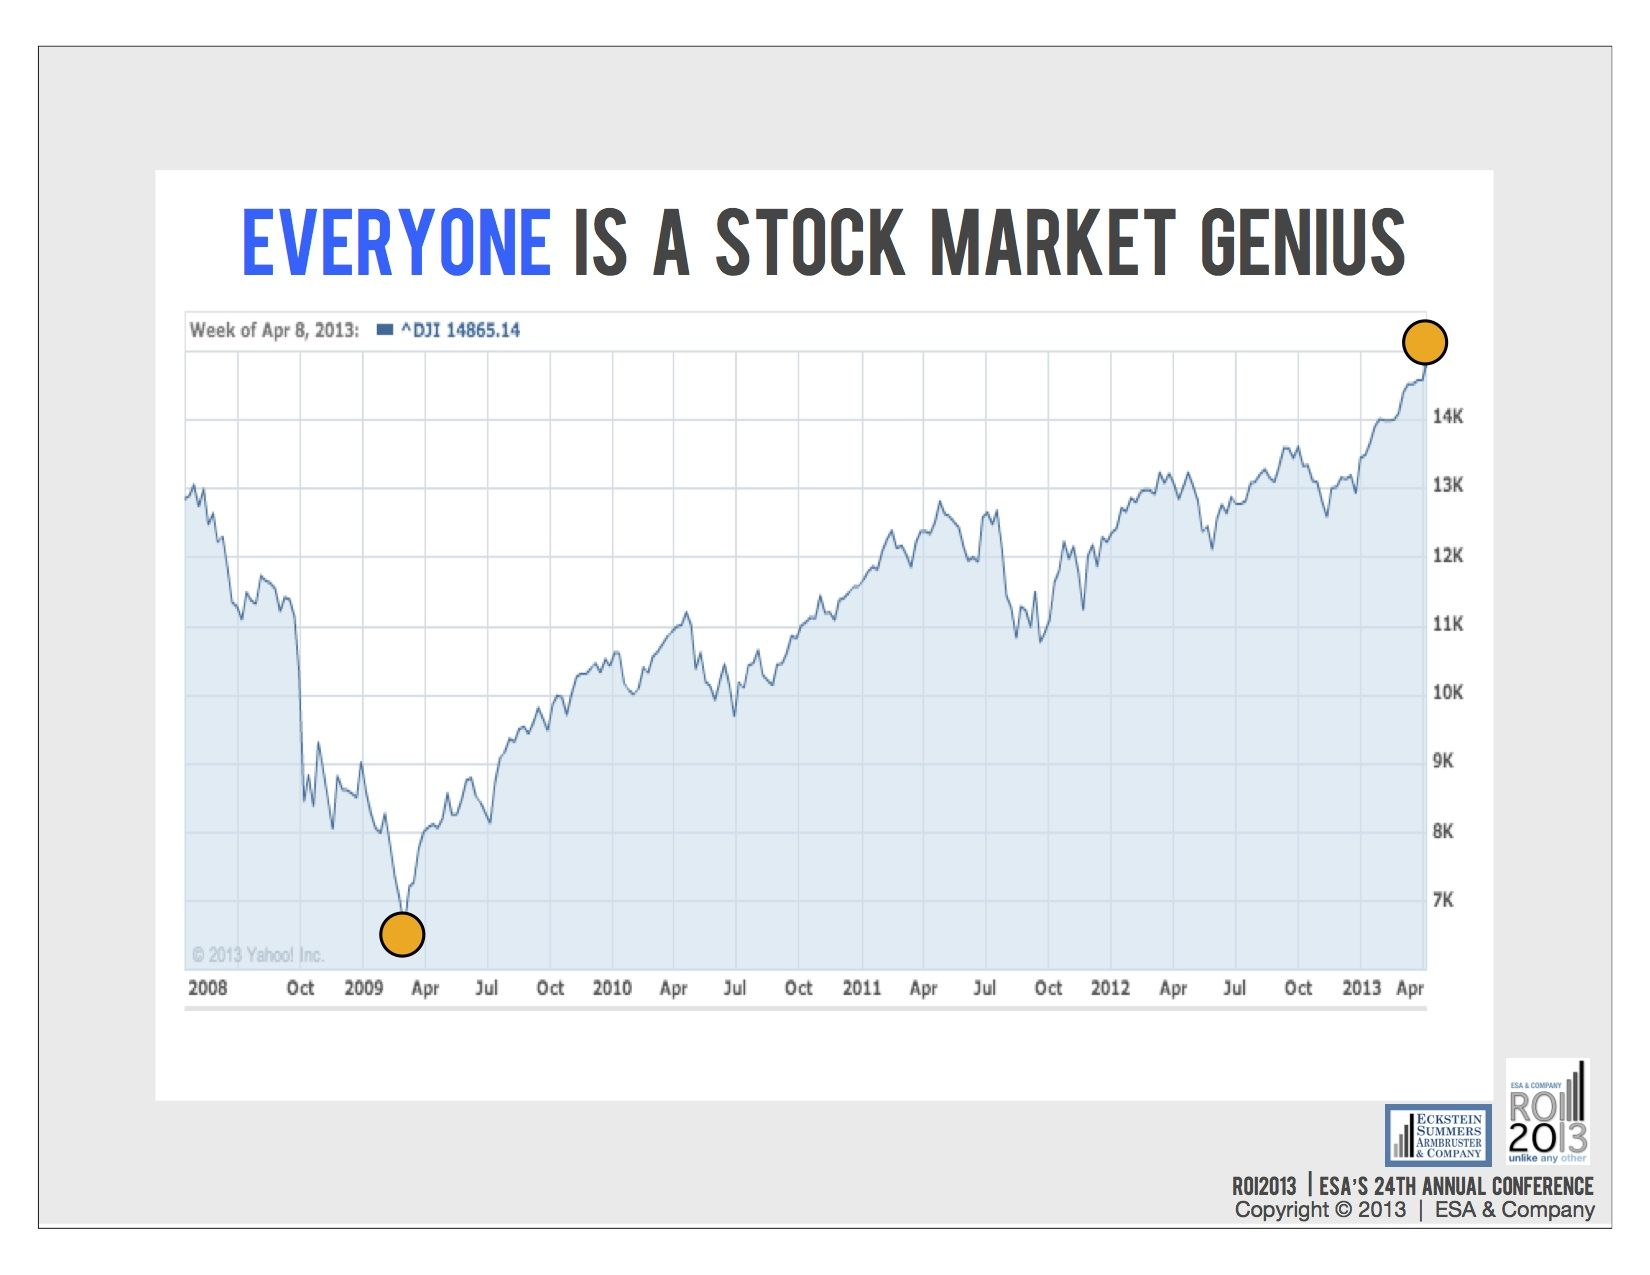 Everyone S A Stock Market Hero When The Market Is Running High Everybody S A Stock Picking Genius So What Happens Next Stock Market Marketing Genius